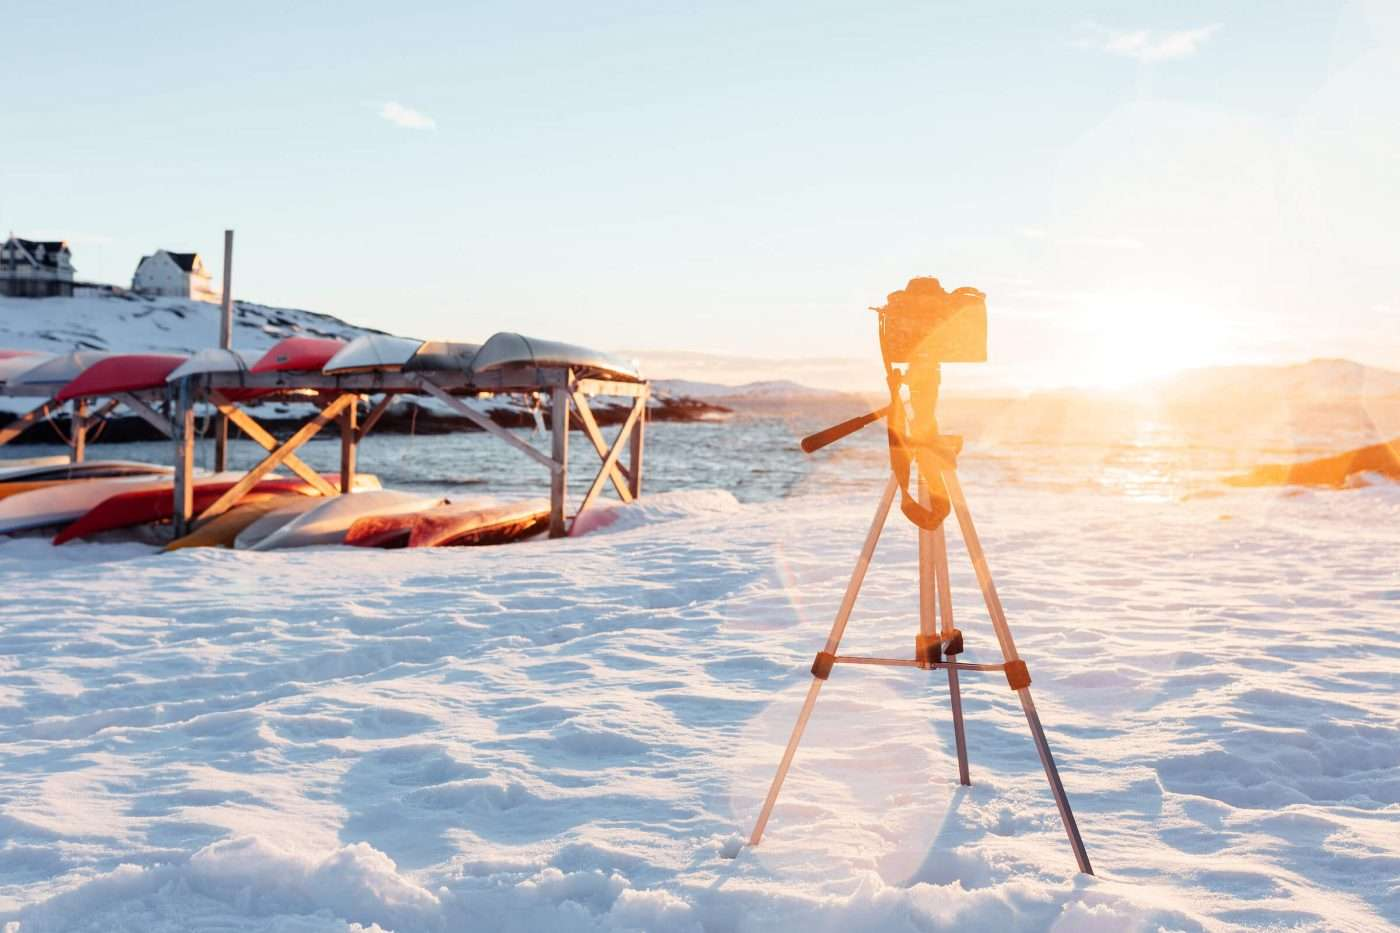 Camera on a tripod taking a timelapse of a sunset in Nuuk in Greenland. Photo by Rebecca Gustafsson